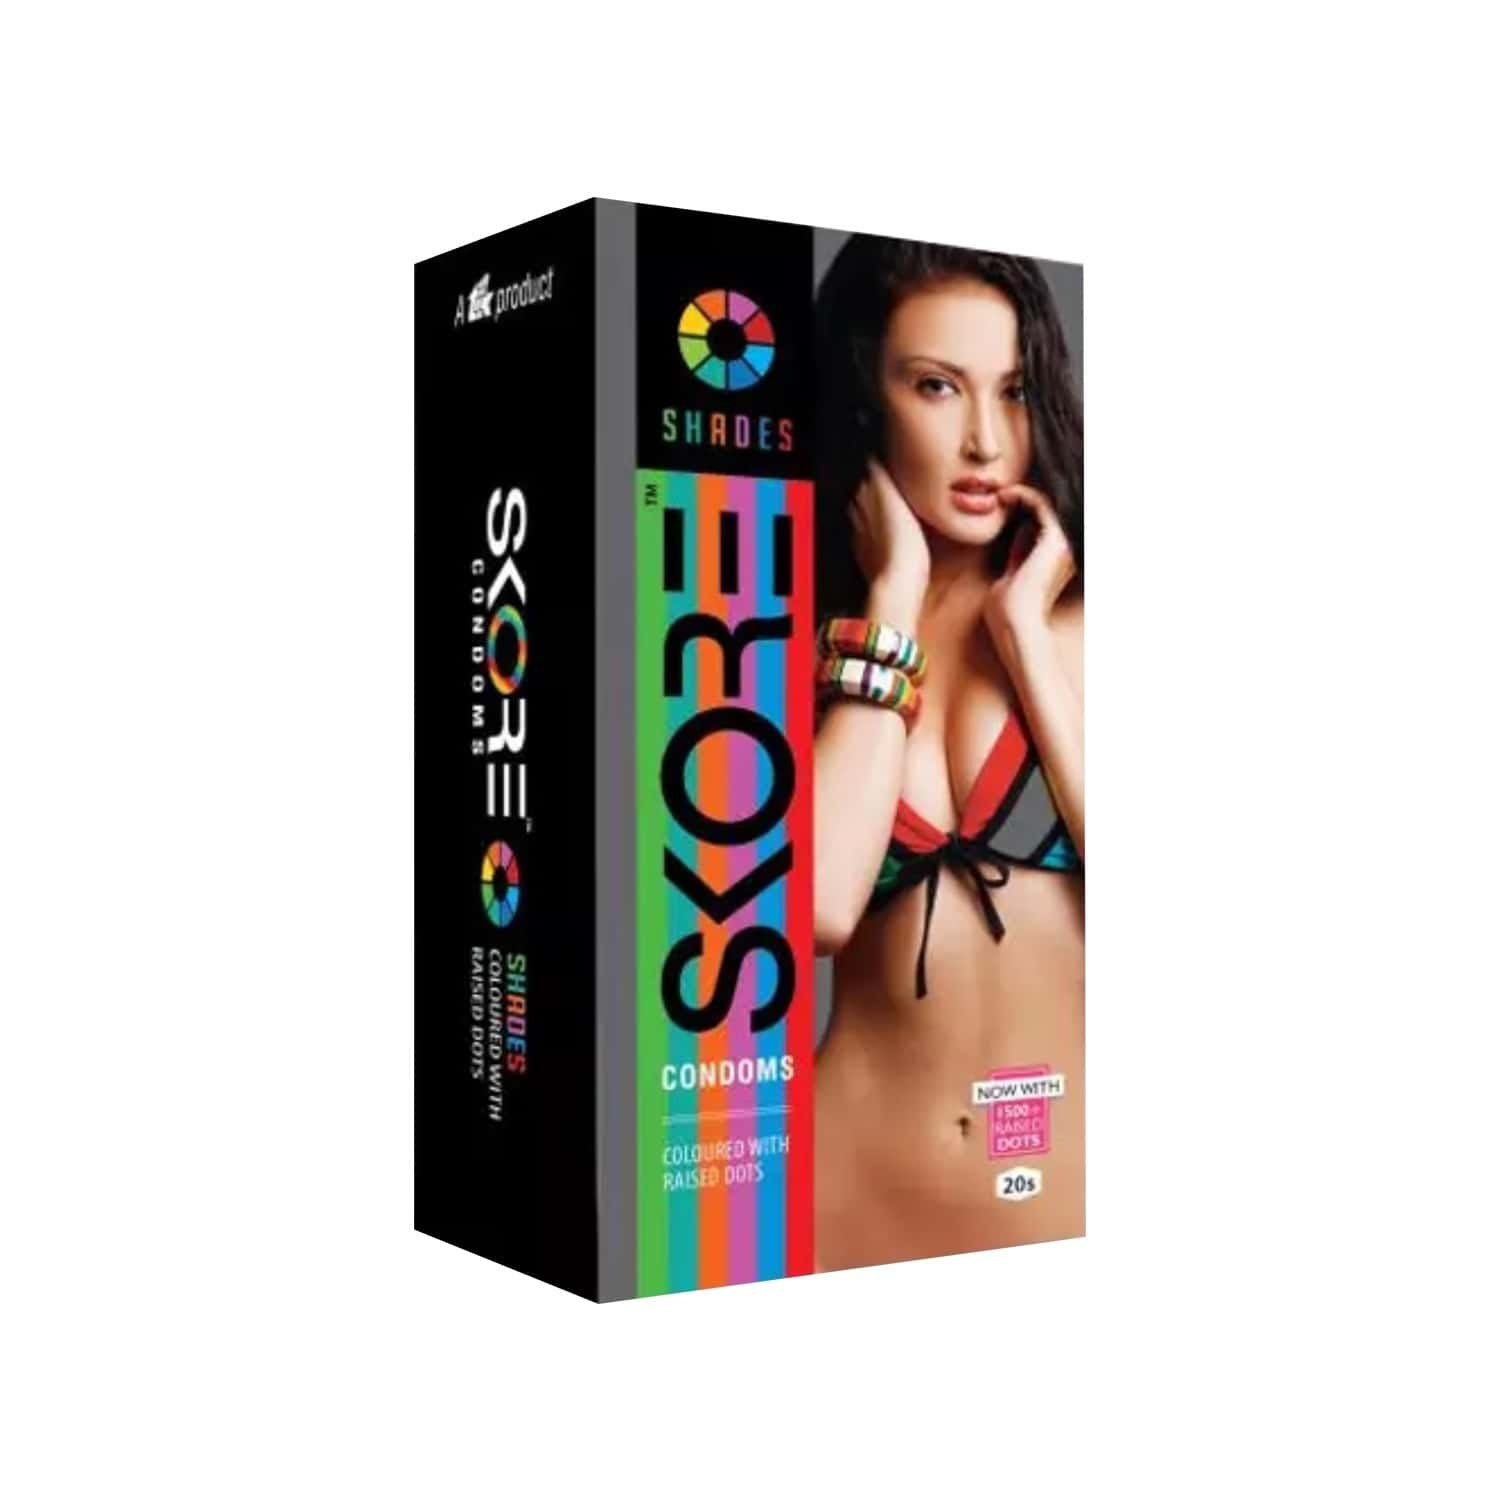 Skore Shades - Coloured & Dotted Condoms - Value Saver Pack Of 2 X 20s